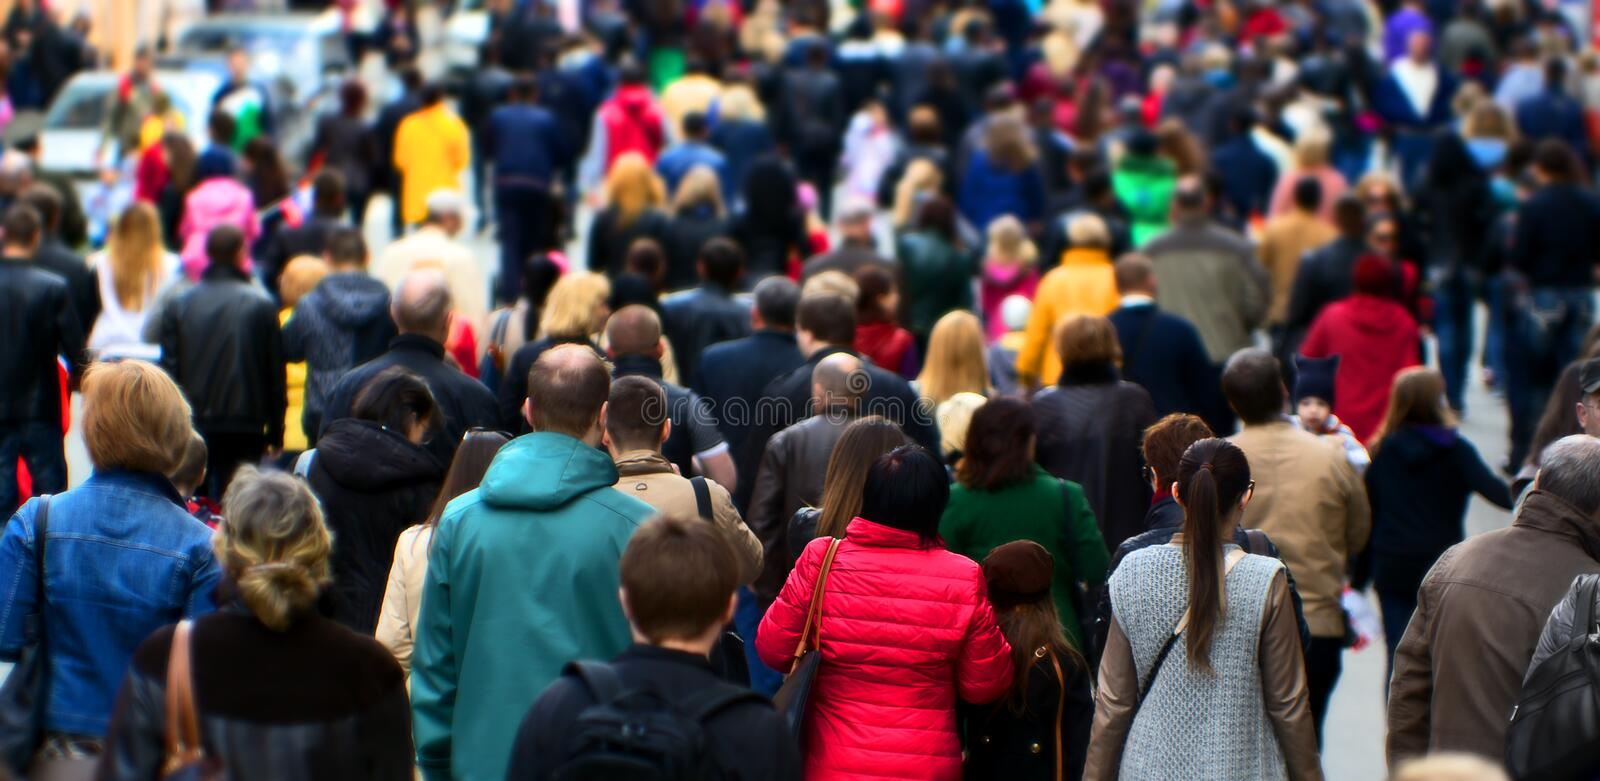 Street crowd royalty free stock images